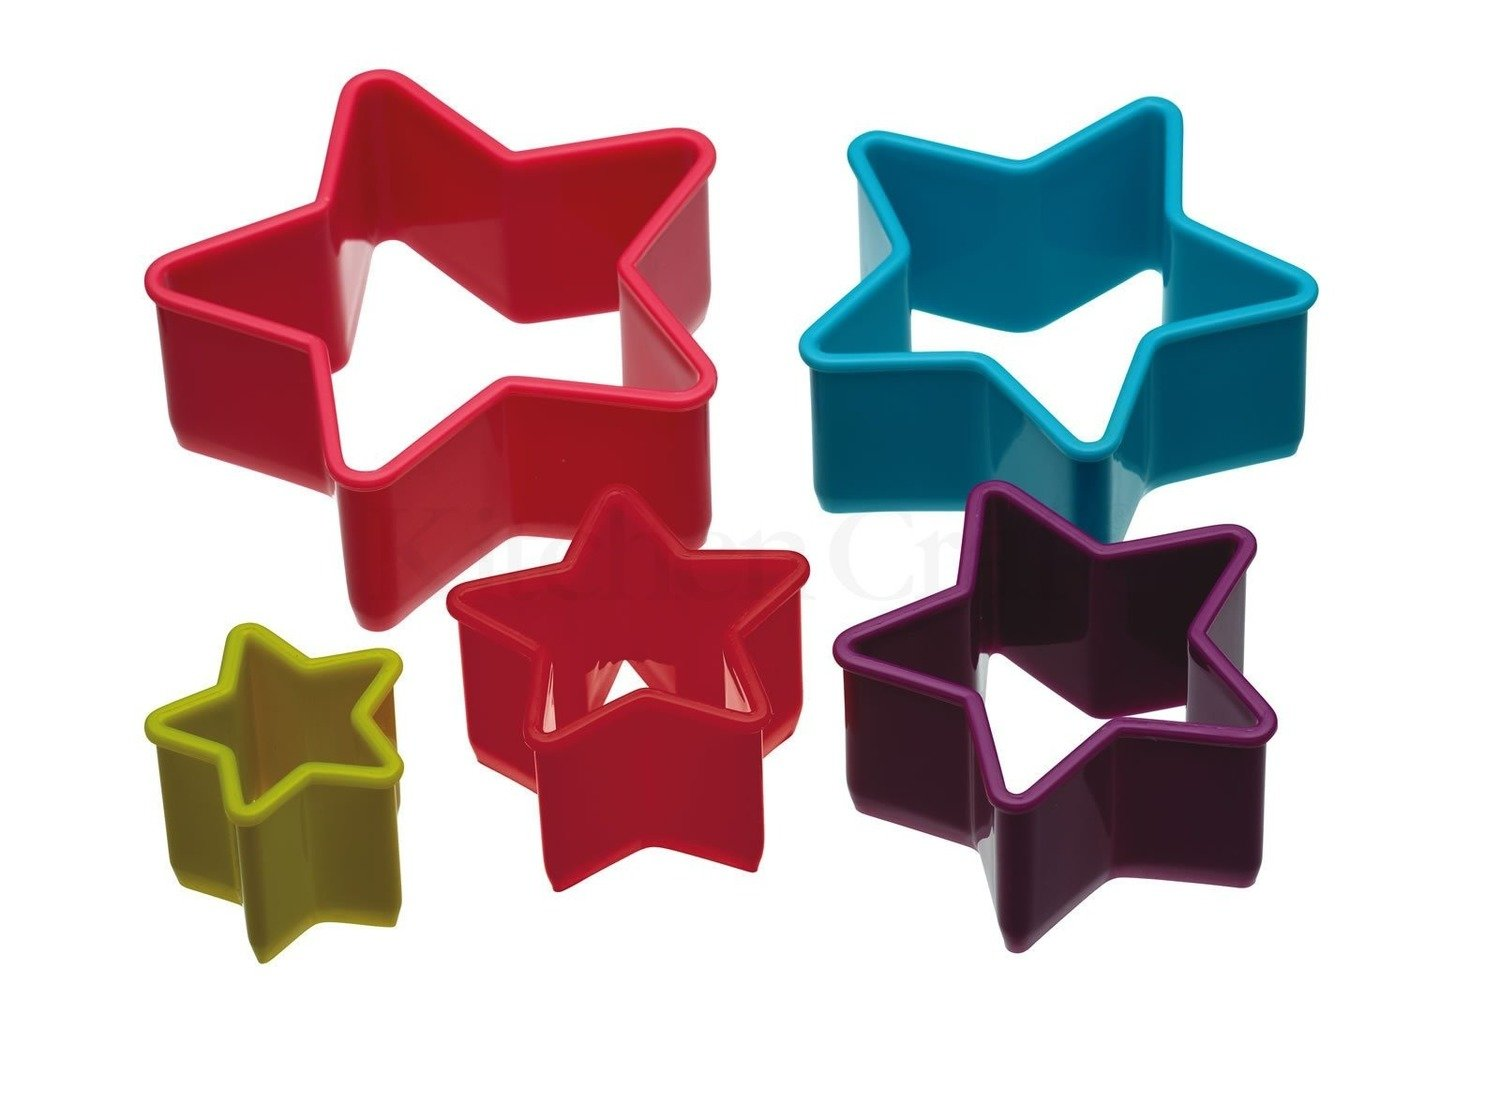 Colourworks - Set of 5 Star Shaped Cookie Cutters - Πλαστικά Κουπάτ σχήμα Αστέρι - σετ 5 τεμαχίων